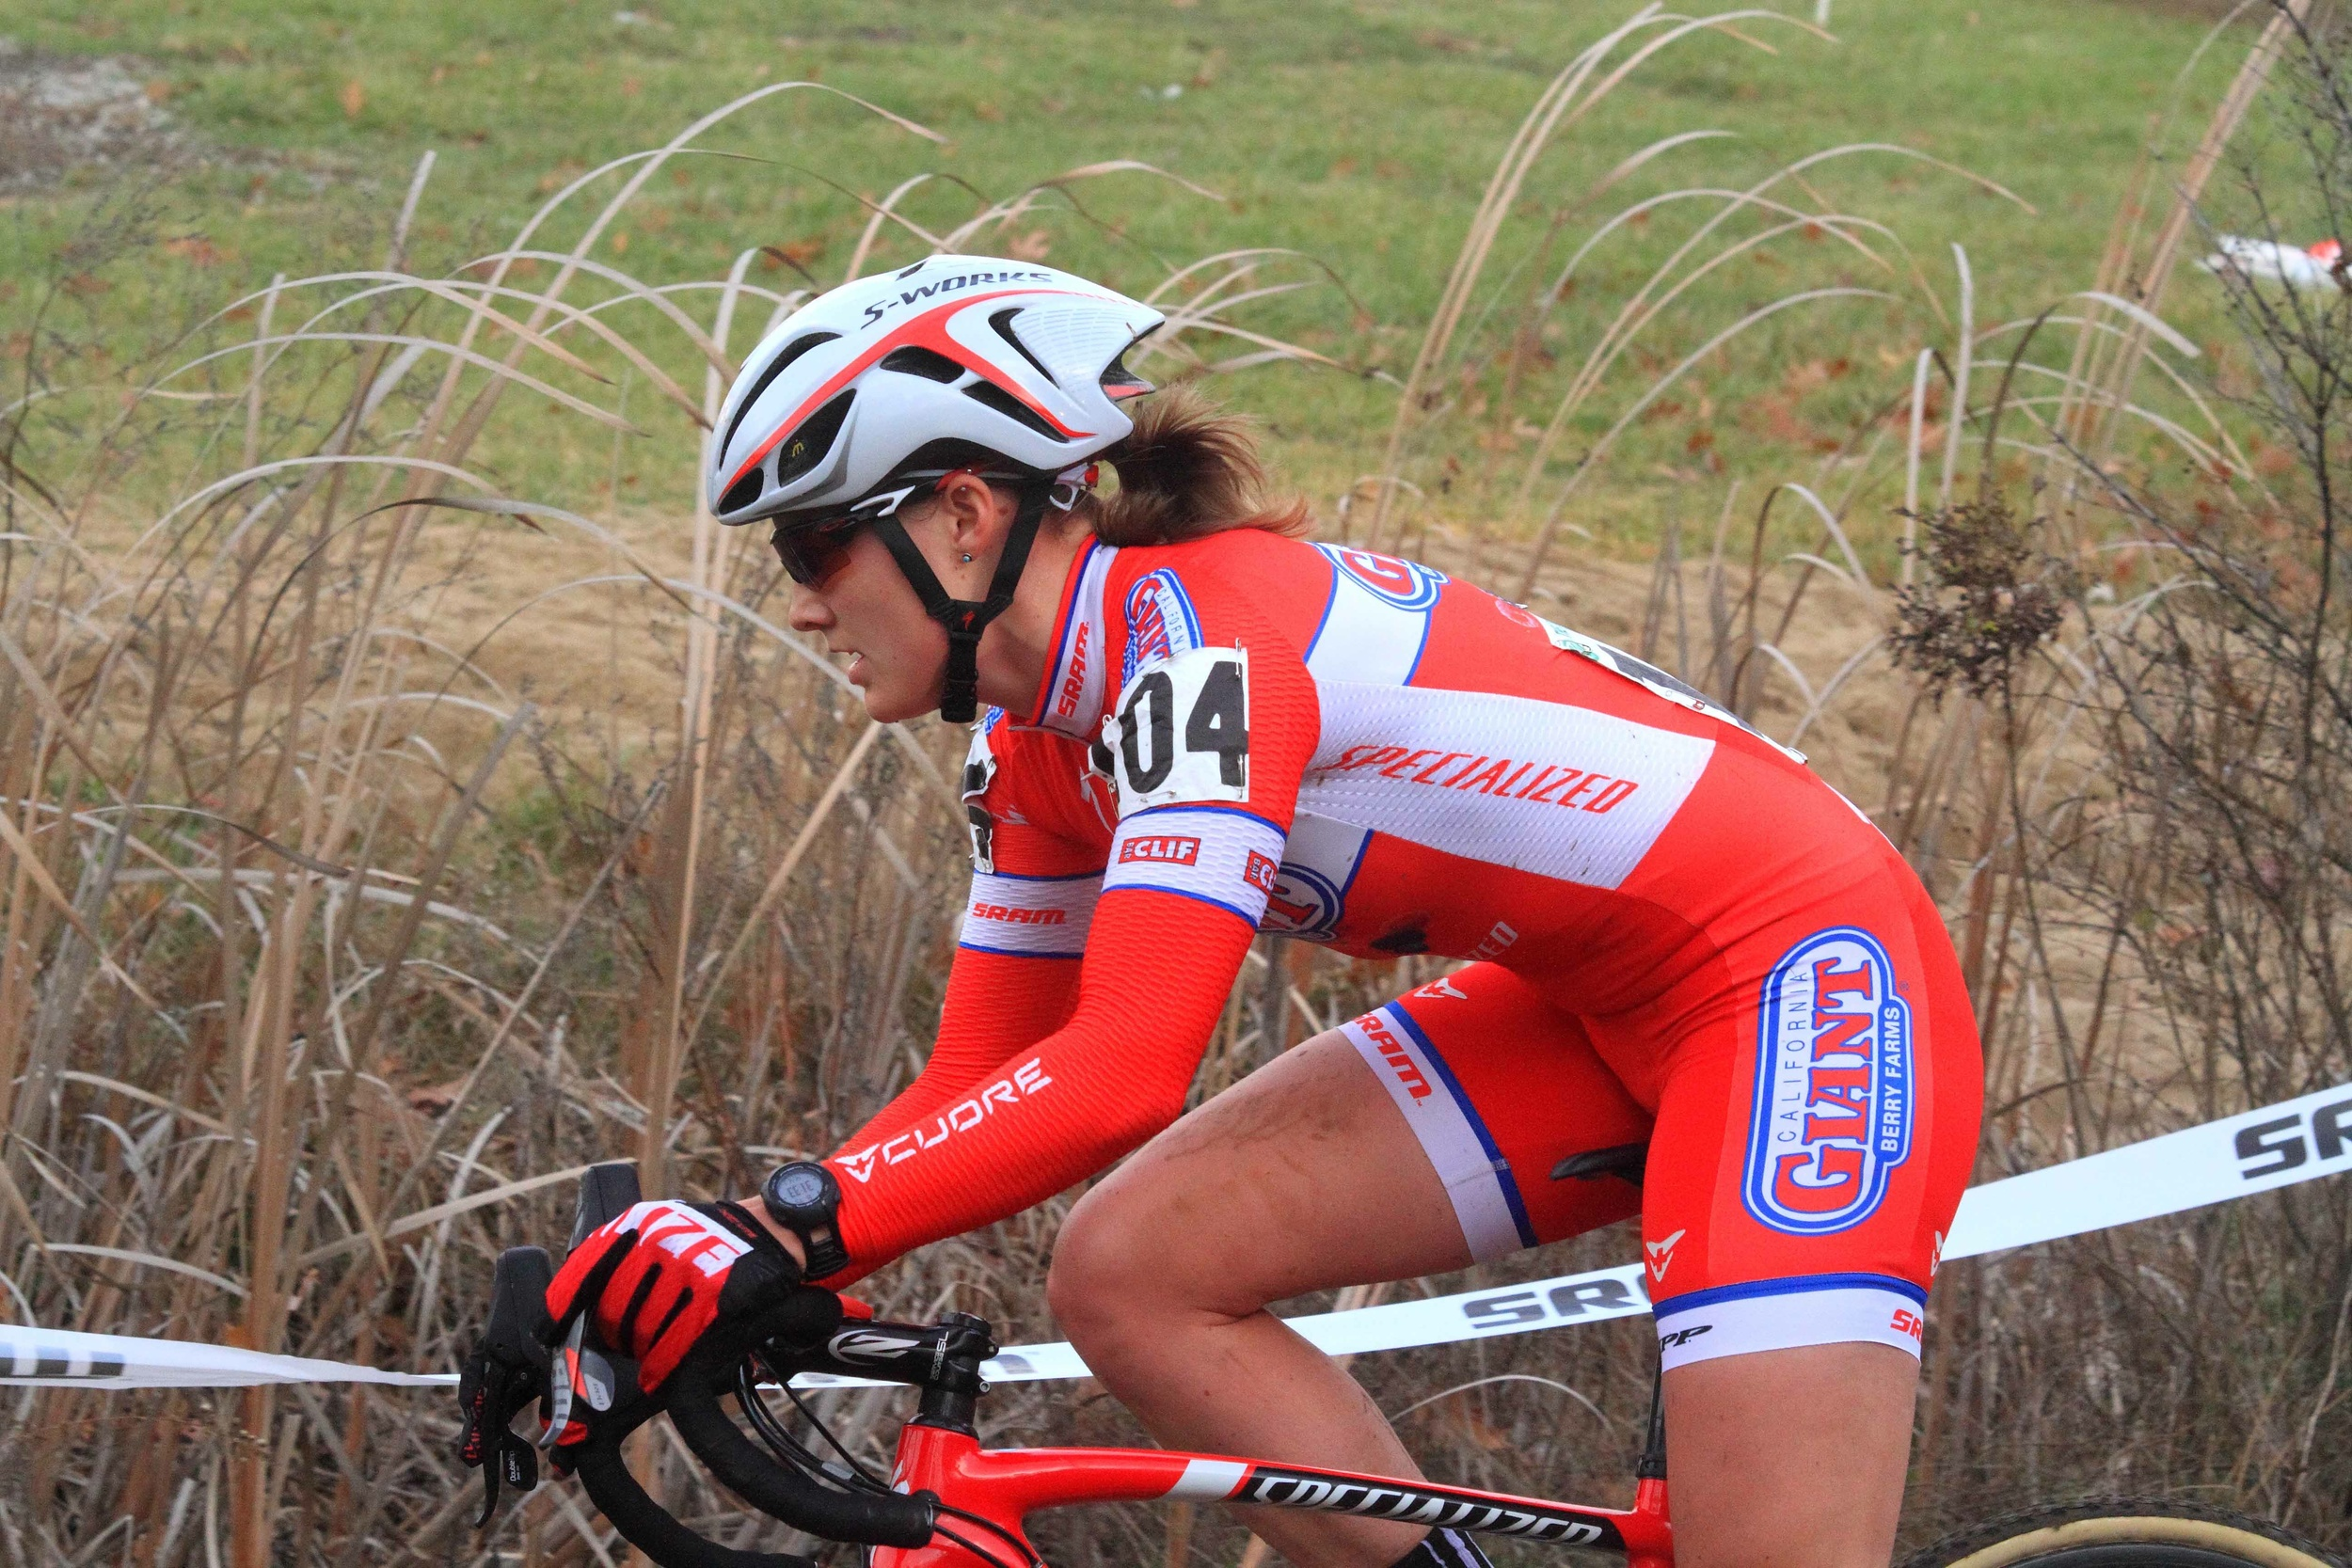 Bell Lap Athlete Elle Anderson en route to victory at the Gran Prix of Gloucester.